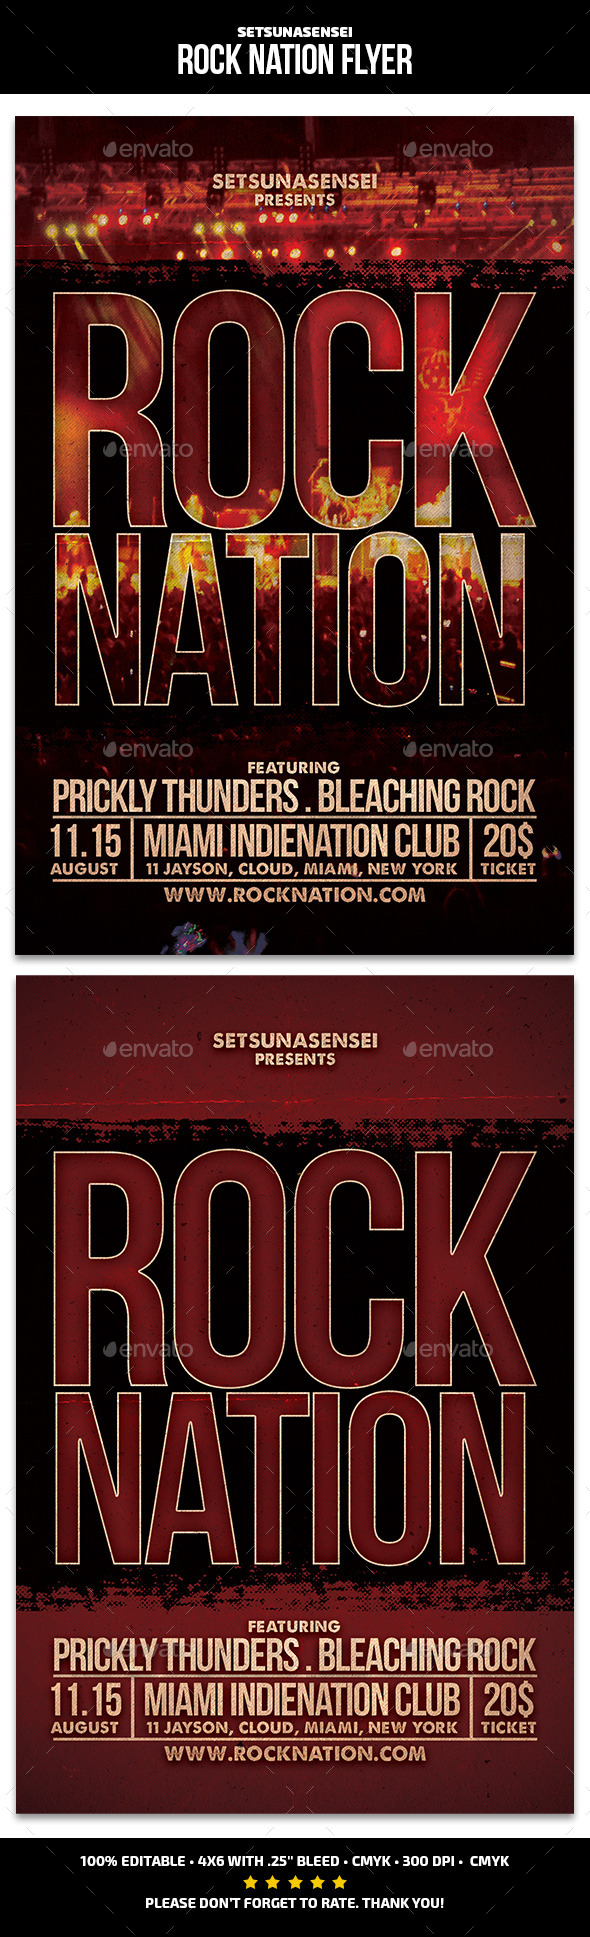 GraphicRiver Rock Nation Flyer 9860685